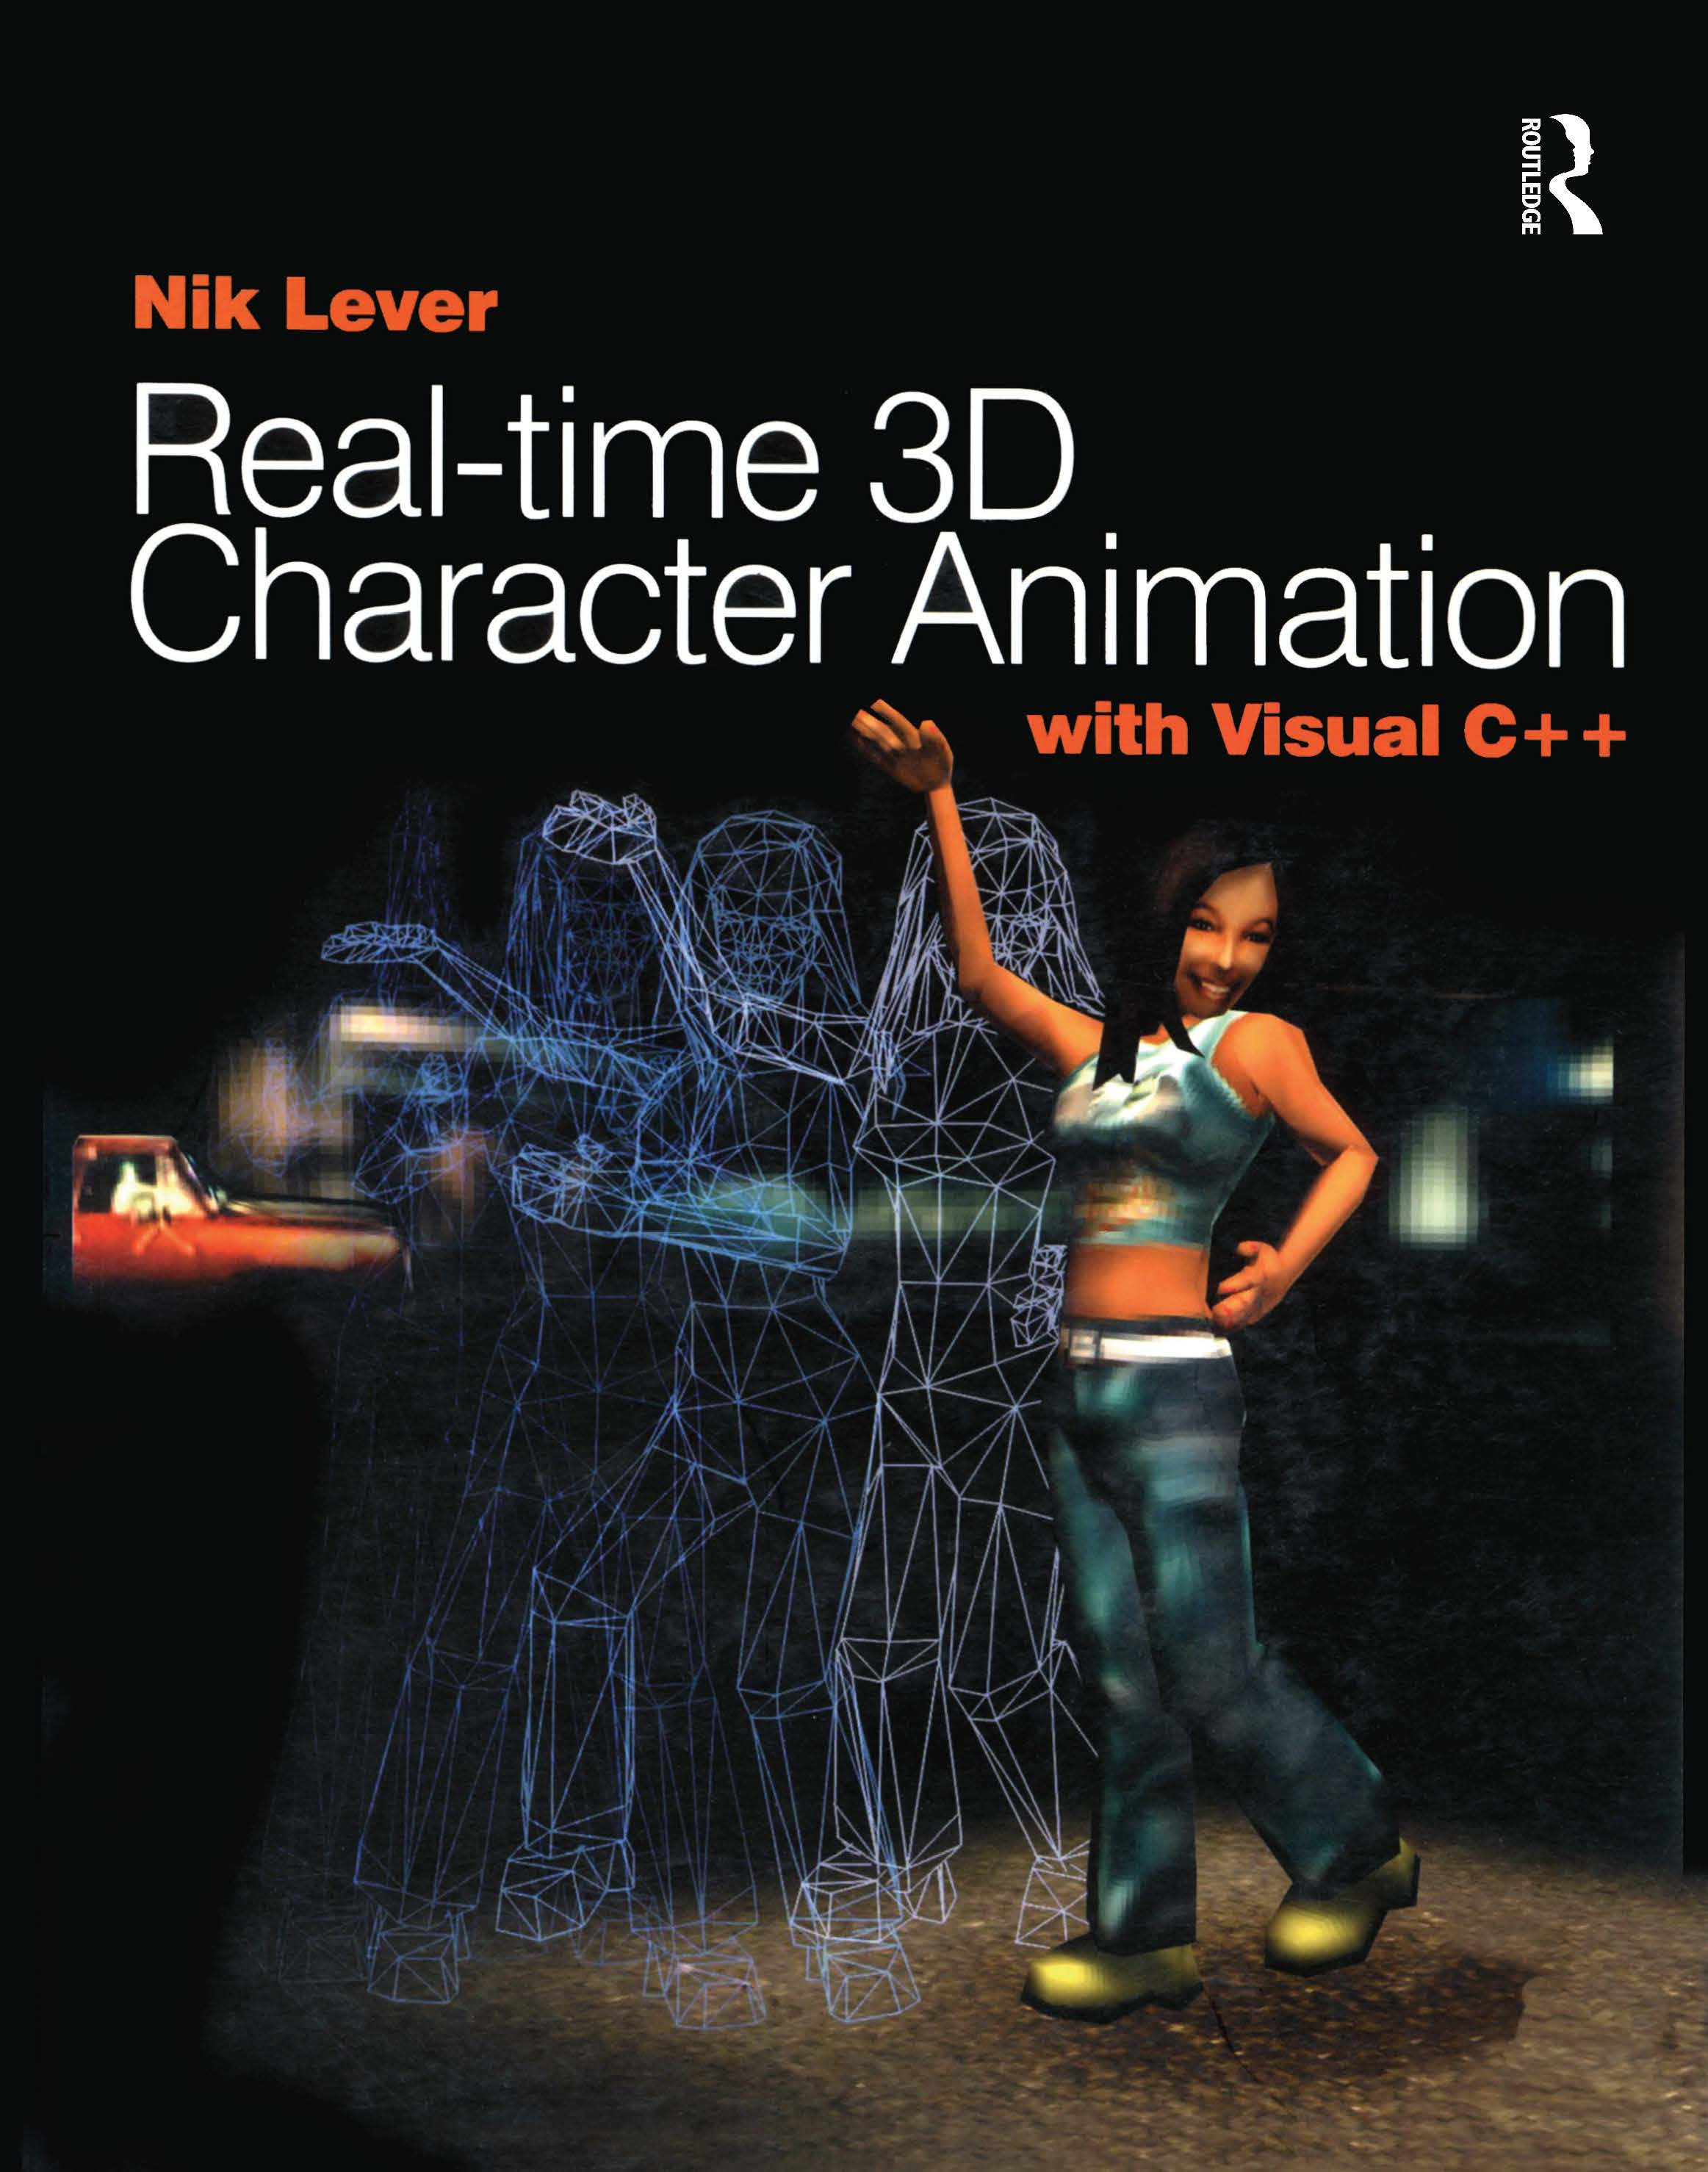 Real-time 3D Character Animation with Visual C++